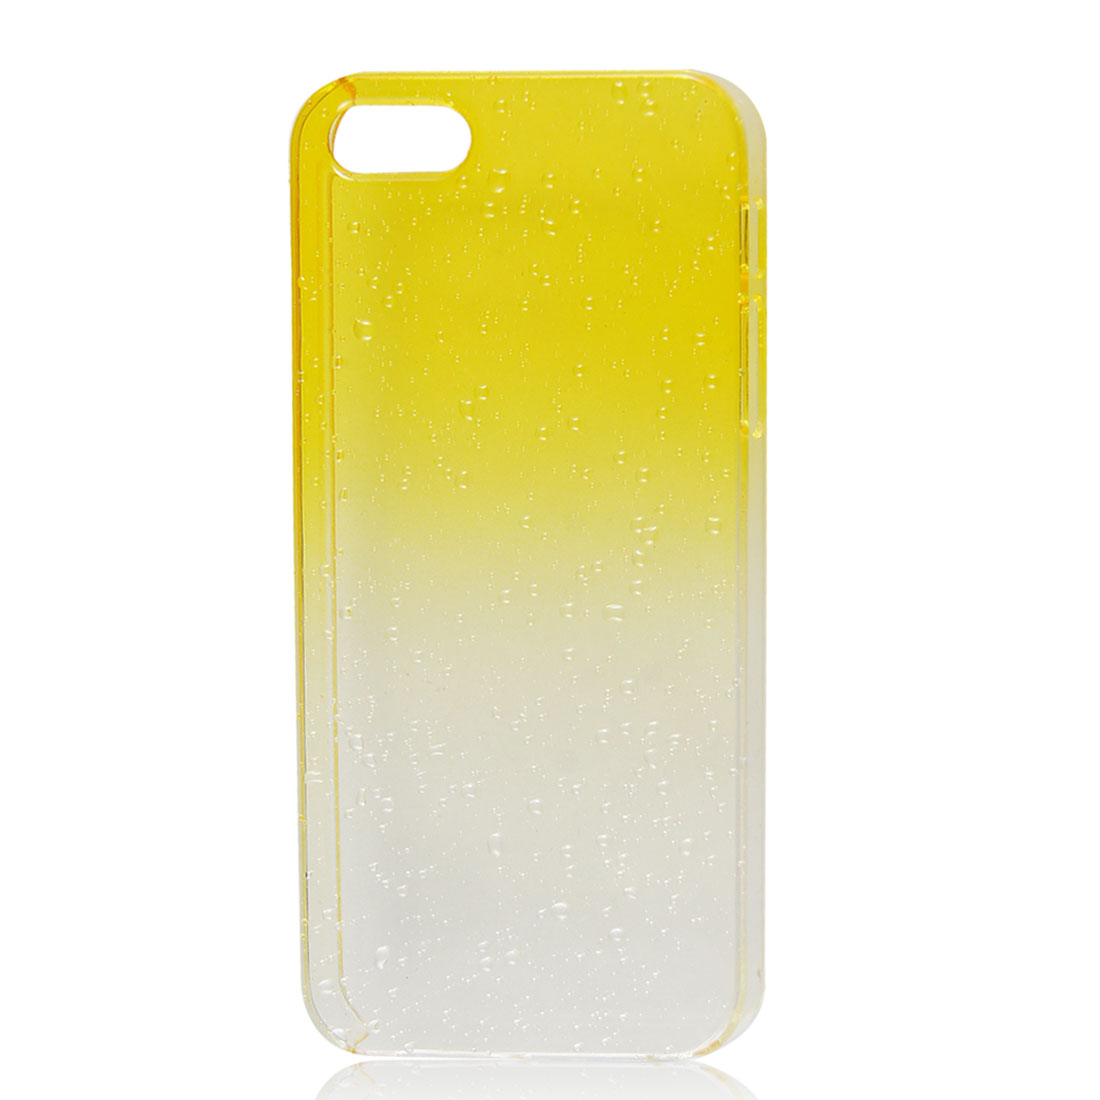 3D Waterdrop Raindrop Yellow Clear Gradient Hard Case Back Cover for iPhone 5 5G